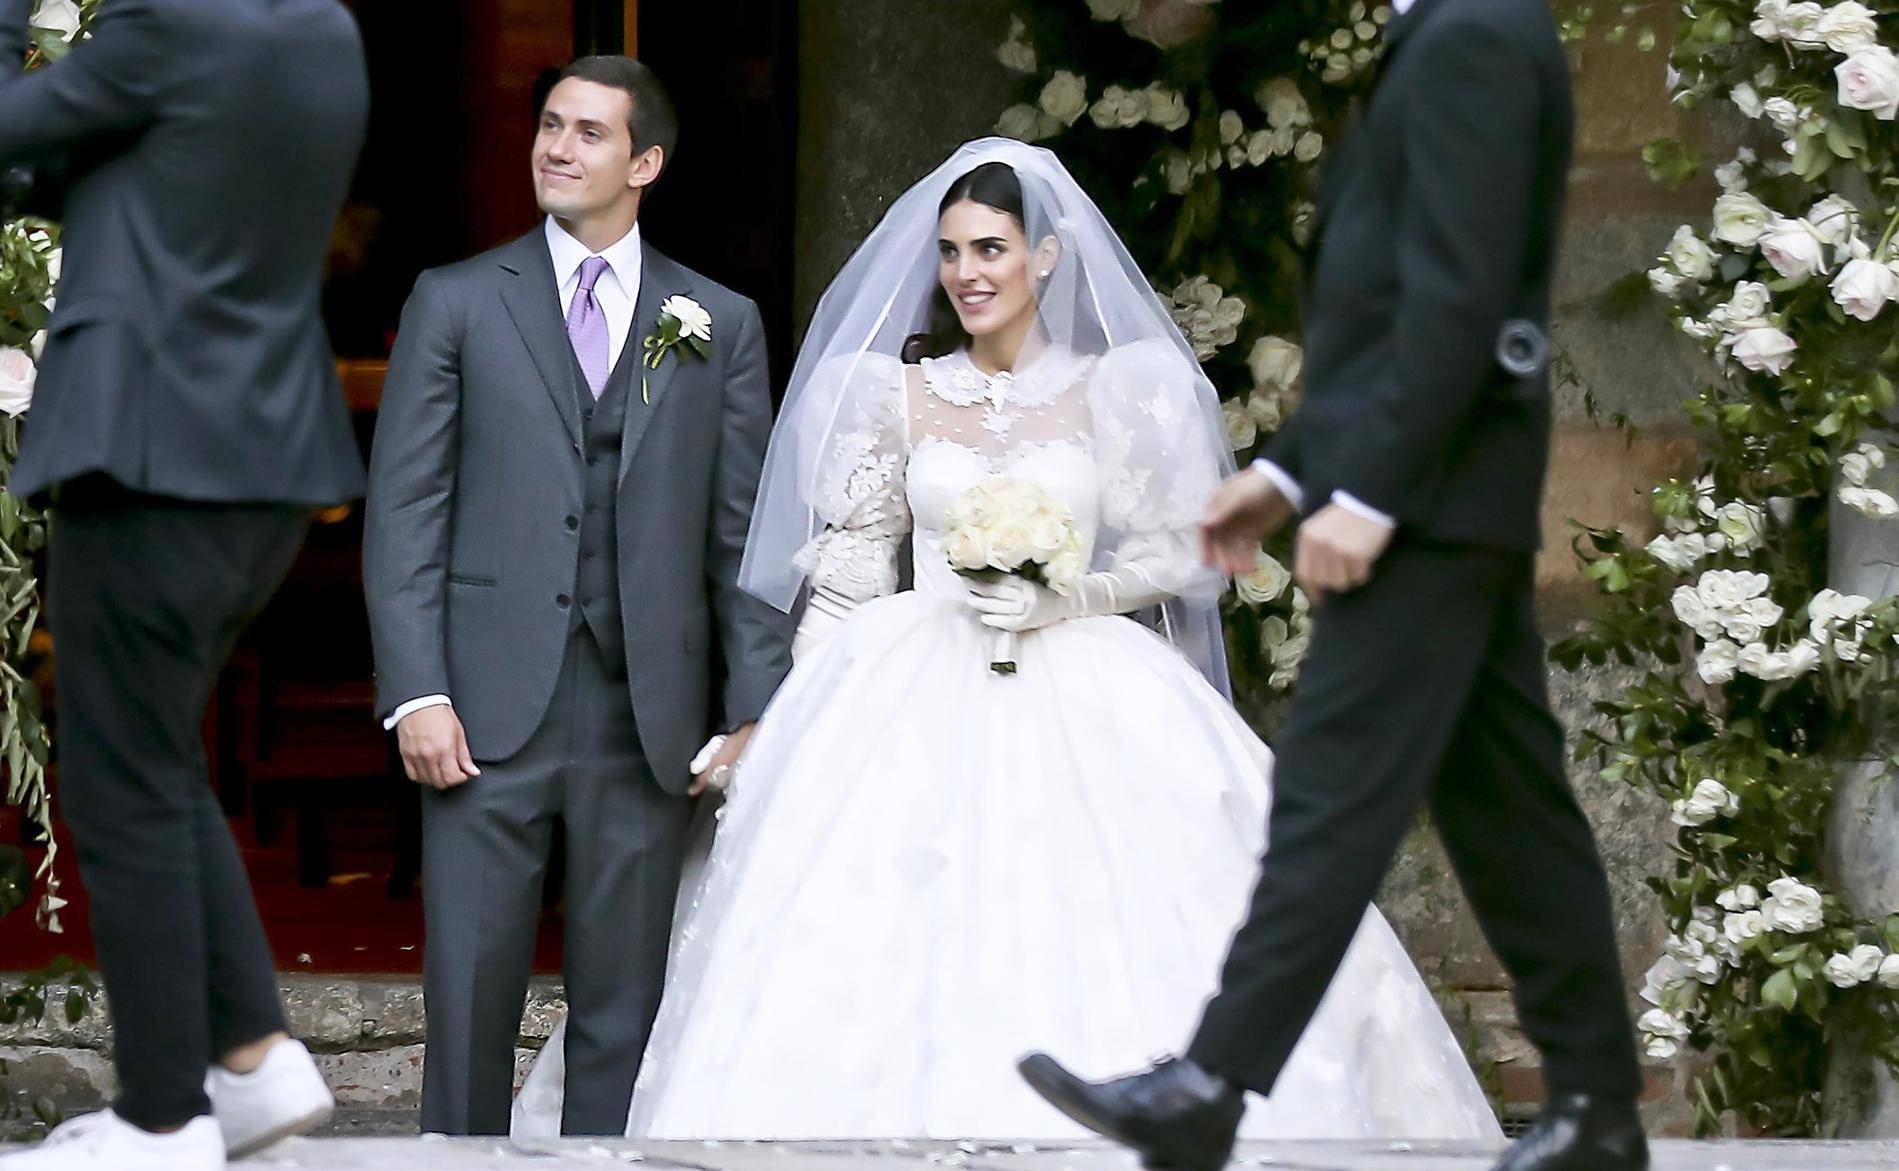 *PREMIUM-EXCLUSIVE* Luigi Berlusconi and Federica Fumagalli tie the knot in Milan. *MUST CALL FOR PRICING*